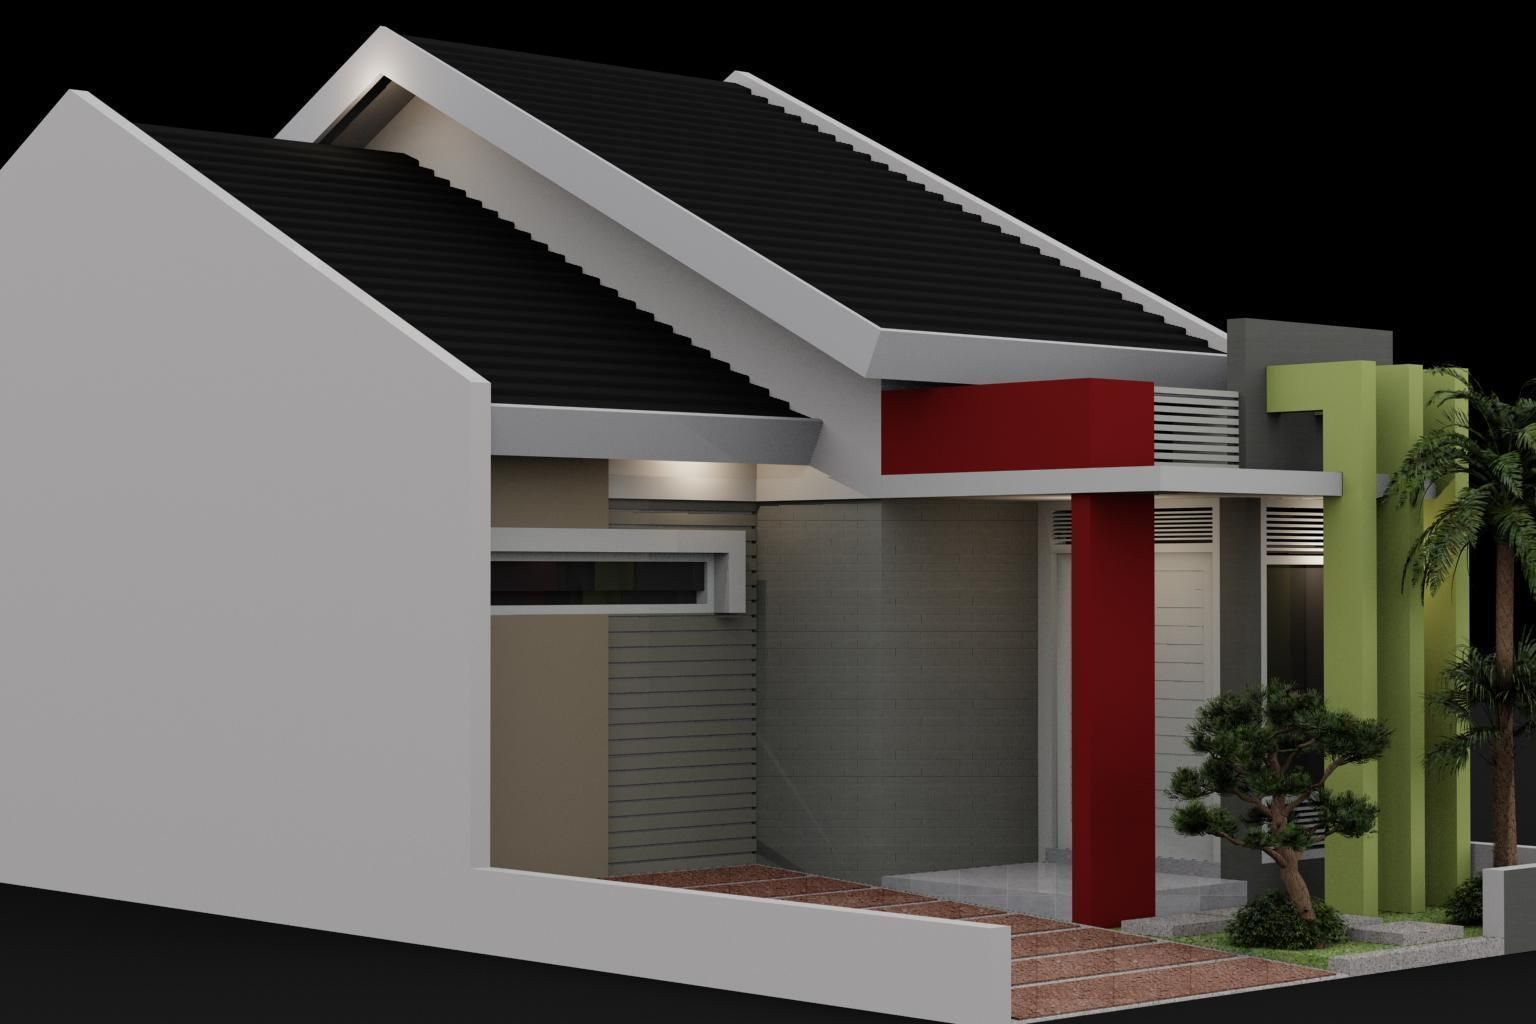 Small house design 3d model max for Small house design 3d